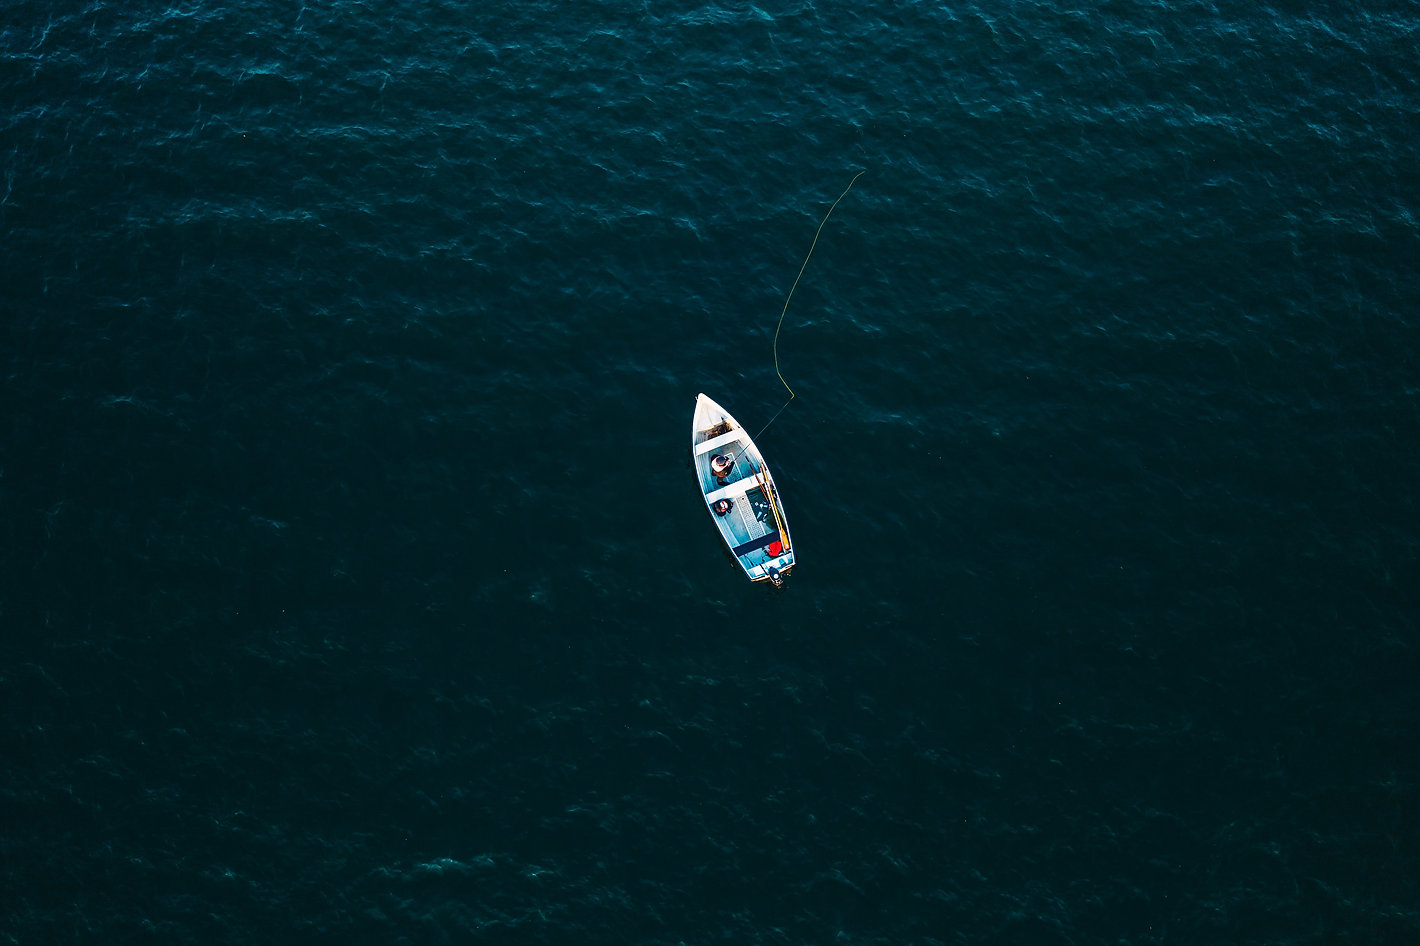 top-view-photo-of-boat-on-ocean-3030045.